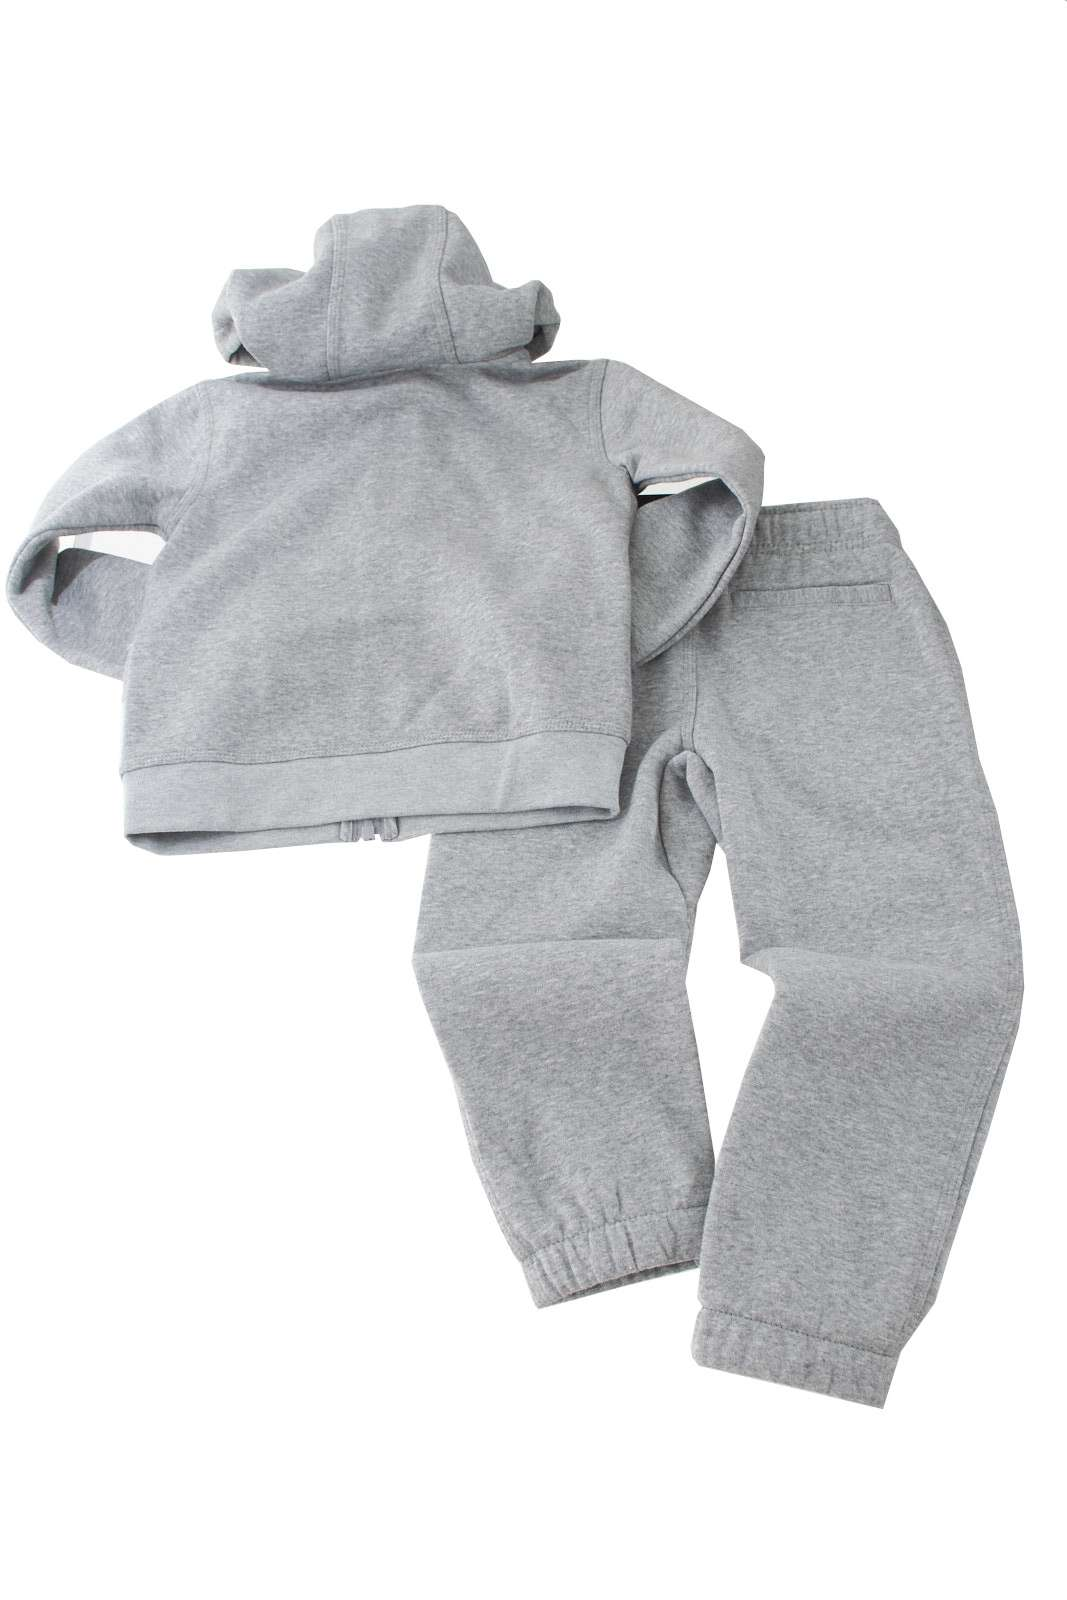 https://www.parmax.com/media/catalog/product/a/i/AI-outlet_parmax-felpa-bambino-Nike-86828-B_1.jpg